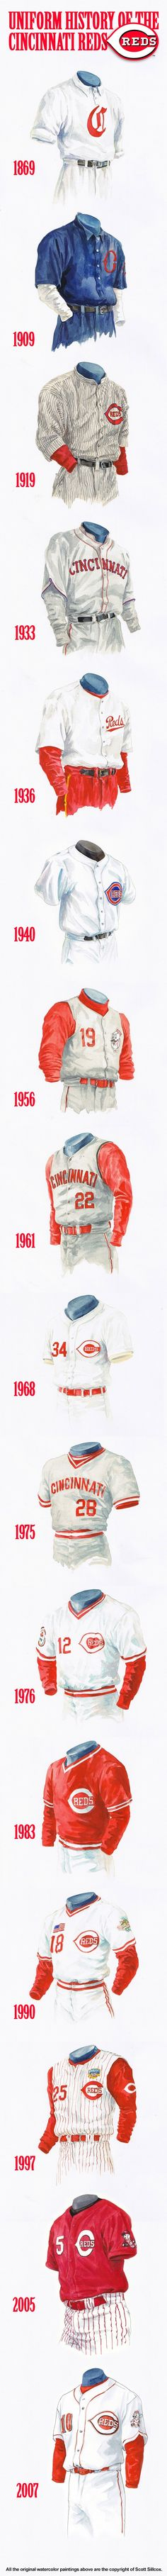 This pin shows the progress that has been made in design for the Cubs baseball uniforms. My goal is to work with Nike to design sports team uniforms and sports merchandise, while remaining ethical and sustainable. Baseball Uniforms, Sports Uniforms, Baseball Jerseys, Baseball Cards, Cubs Baseball, Baseball Stuff, Team Uniforms, Go Red, Red S